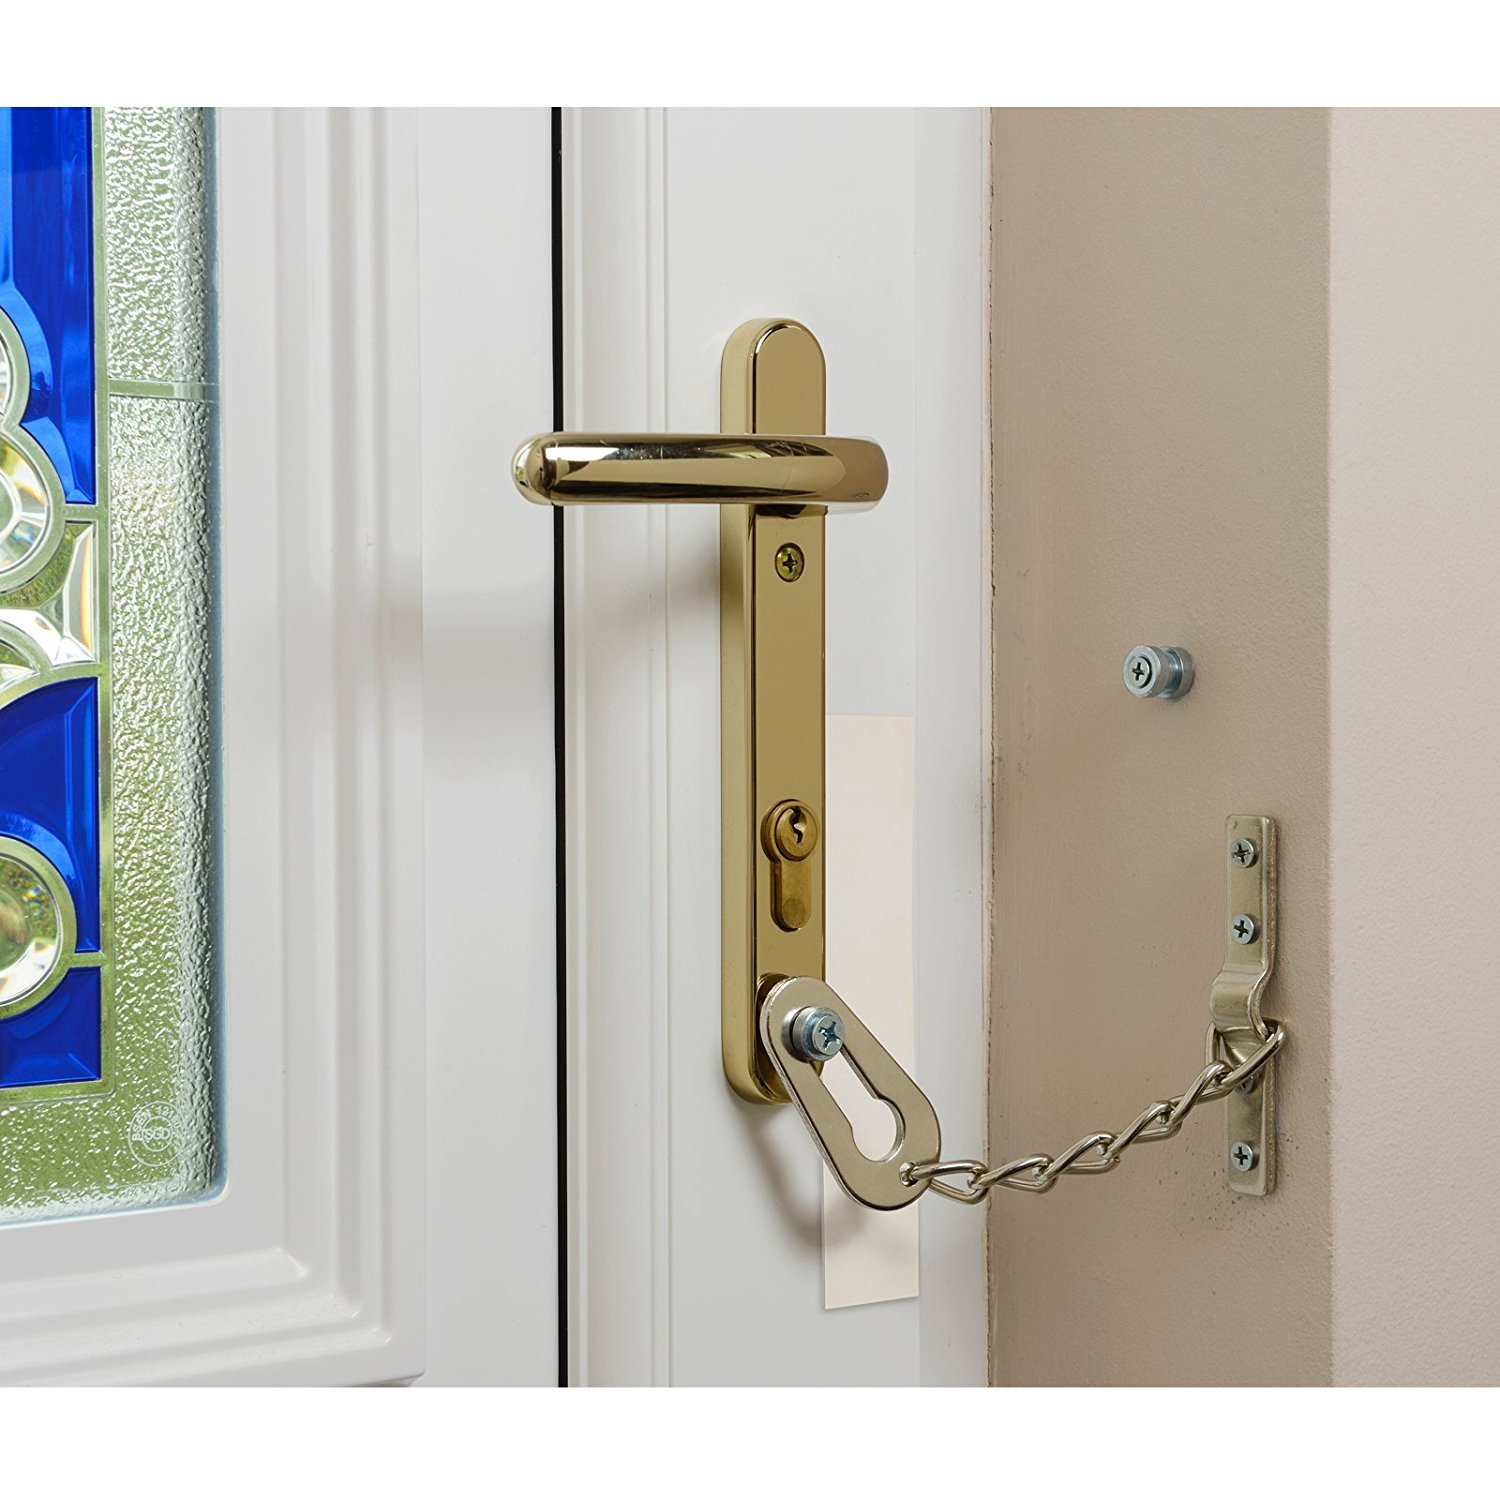 UNWANTED CALLER SECURITY TOP QUALITY CHROME DOOR SAFETY GAURD